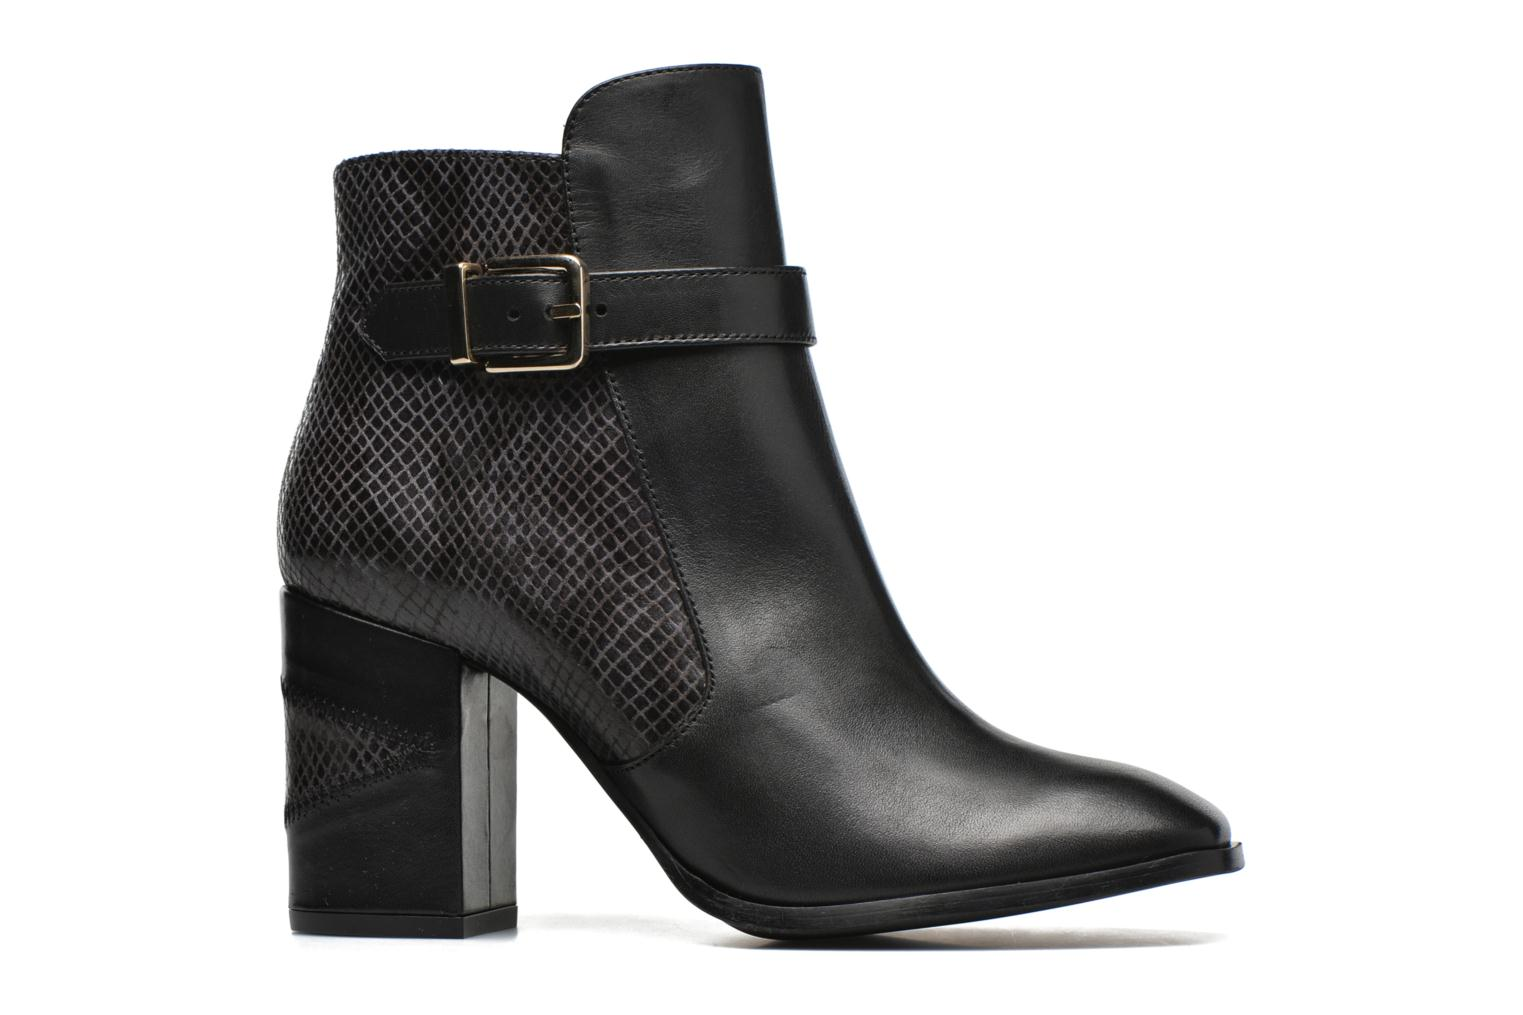 Marques Chaussure femme Made by SARENZA femme See Ya Topanga #7 Ambtes noir + Empeda grey